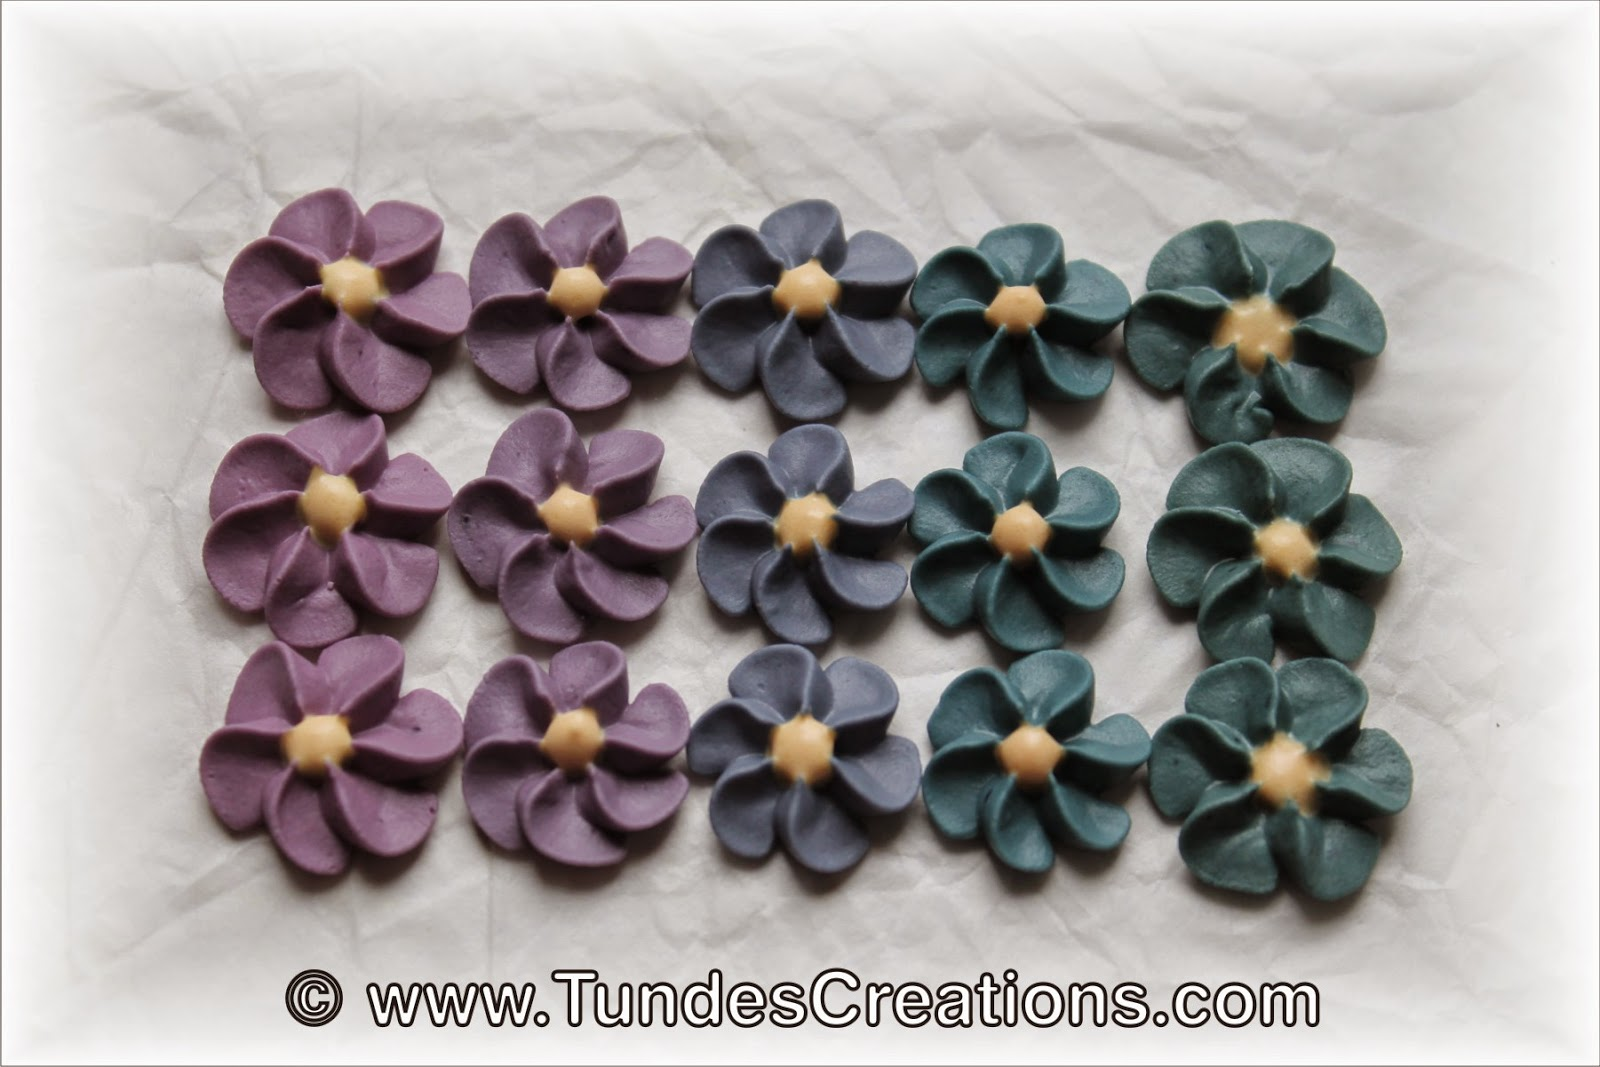 Icing flowers with TruColor natural food colors